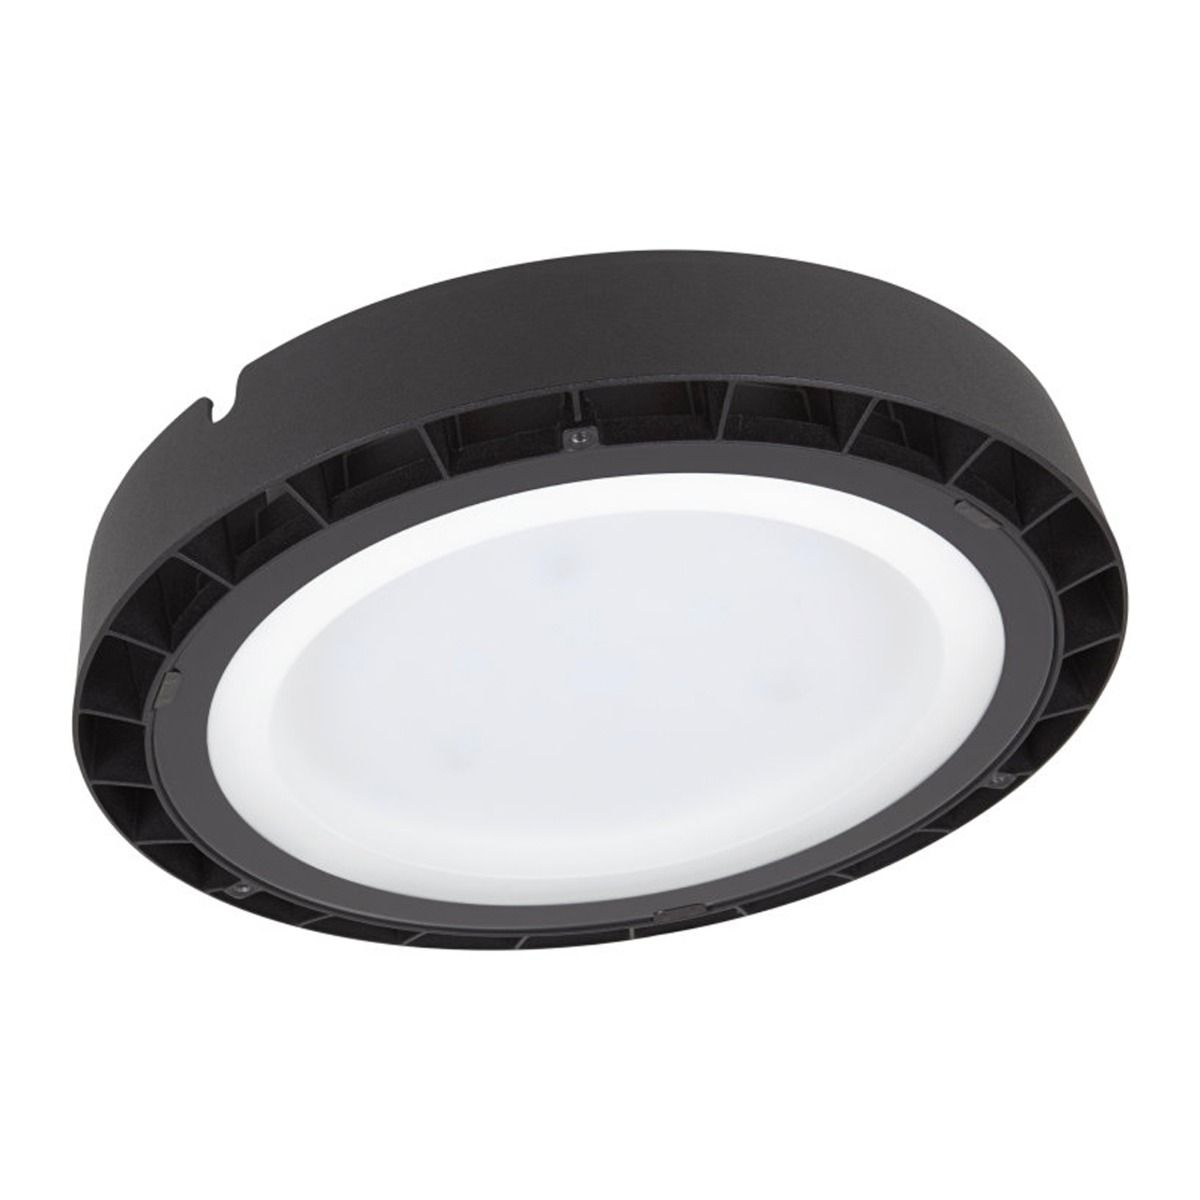 Ledvance LED High Bay Value 200W 4000K IP65 20000lm 100D | Cool White - Replaces 400W